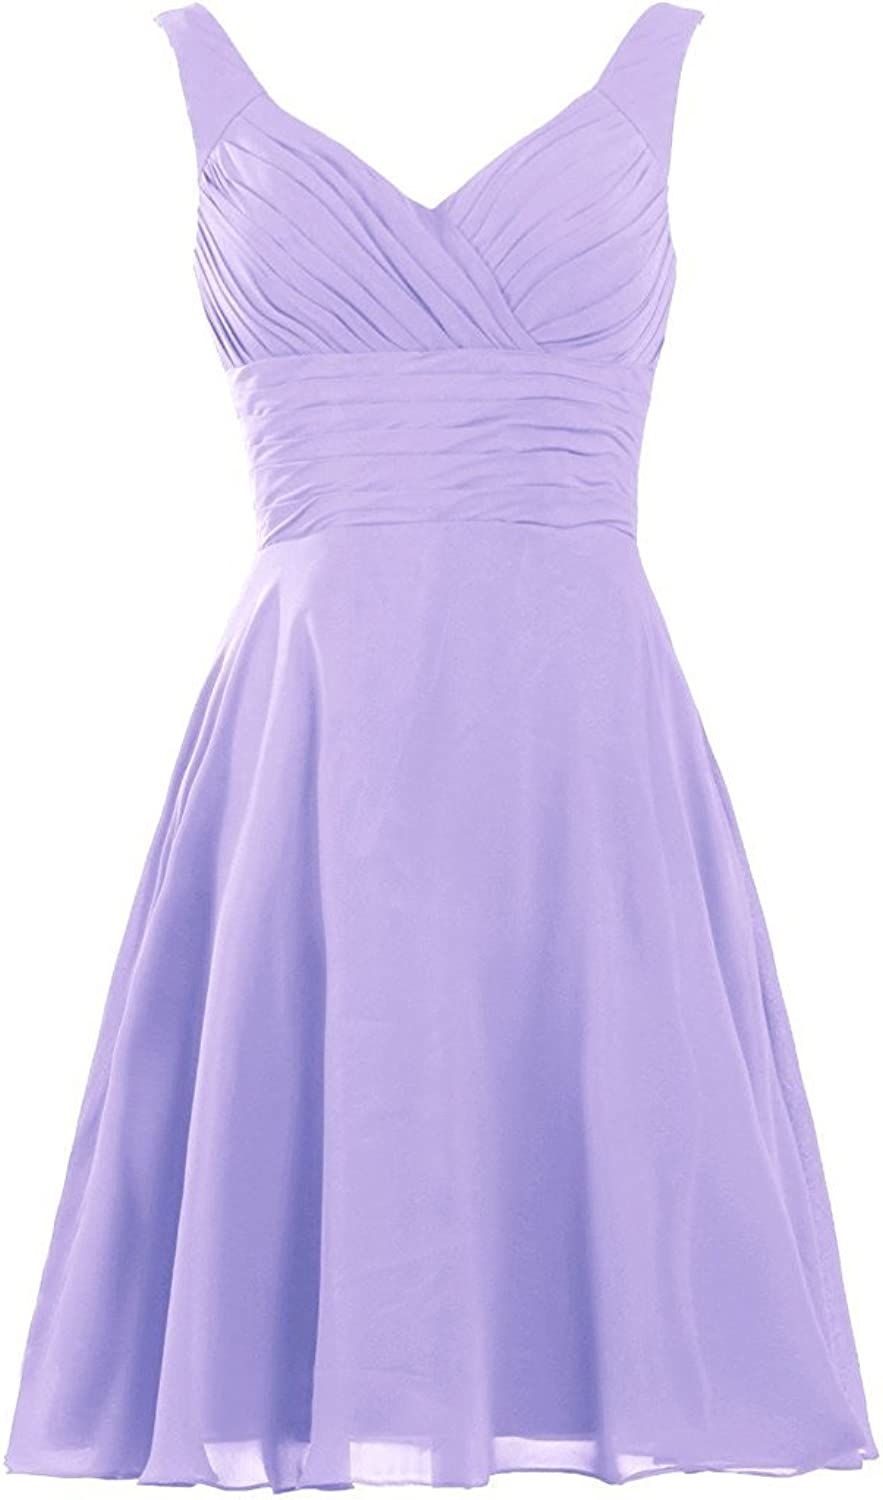 YanLian Women's Pleated Sweetheart Bridesmaid Dresses A Line Cocktail Gown YL113